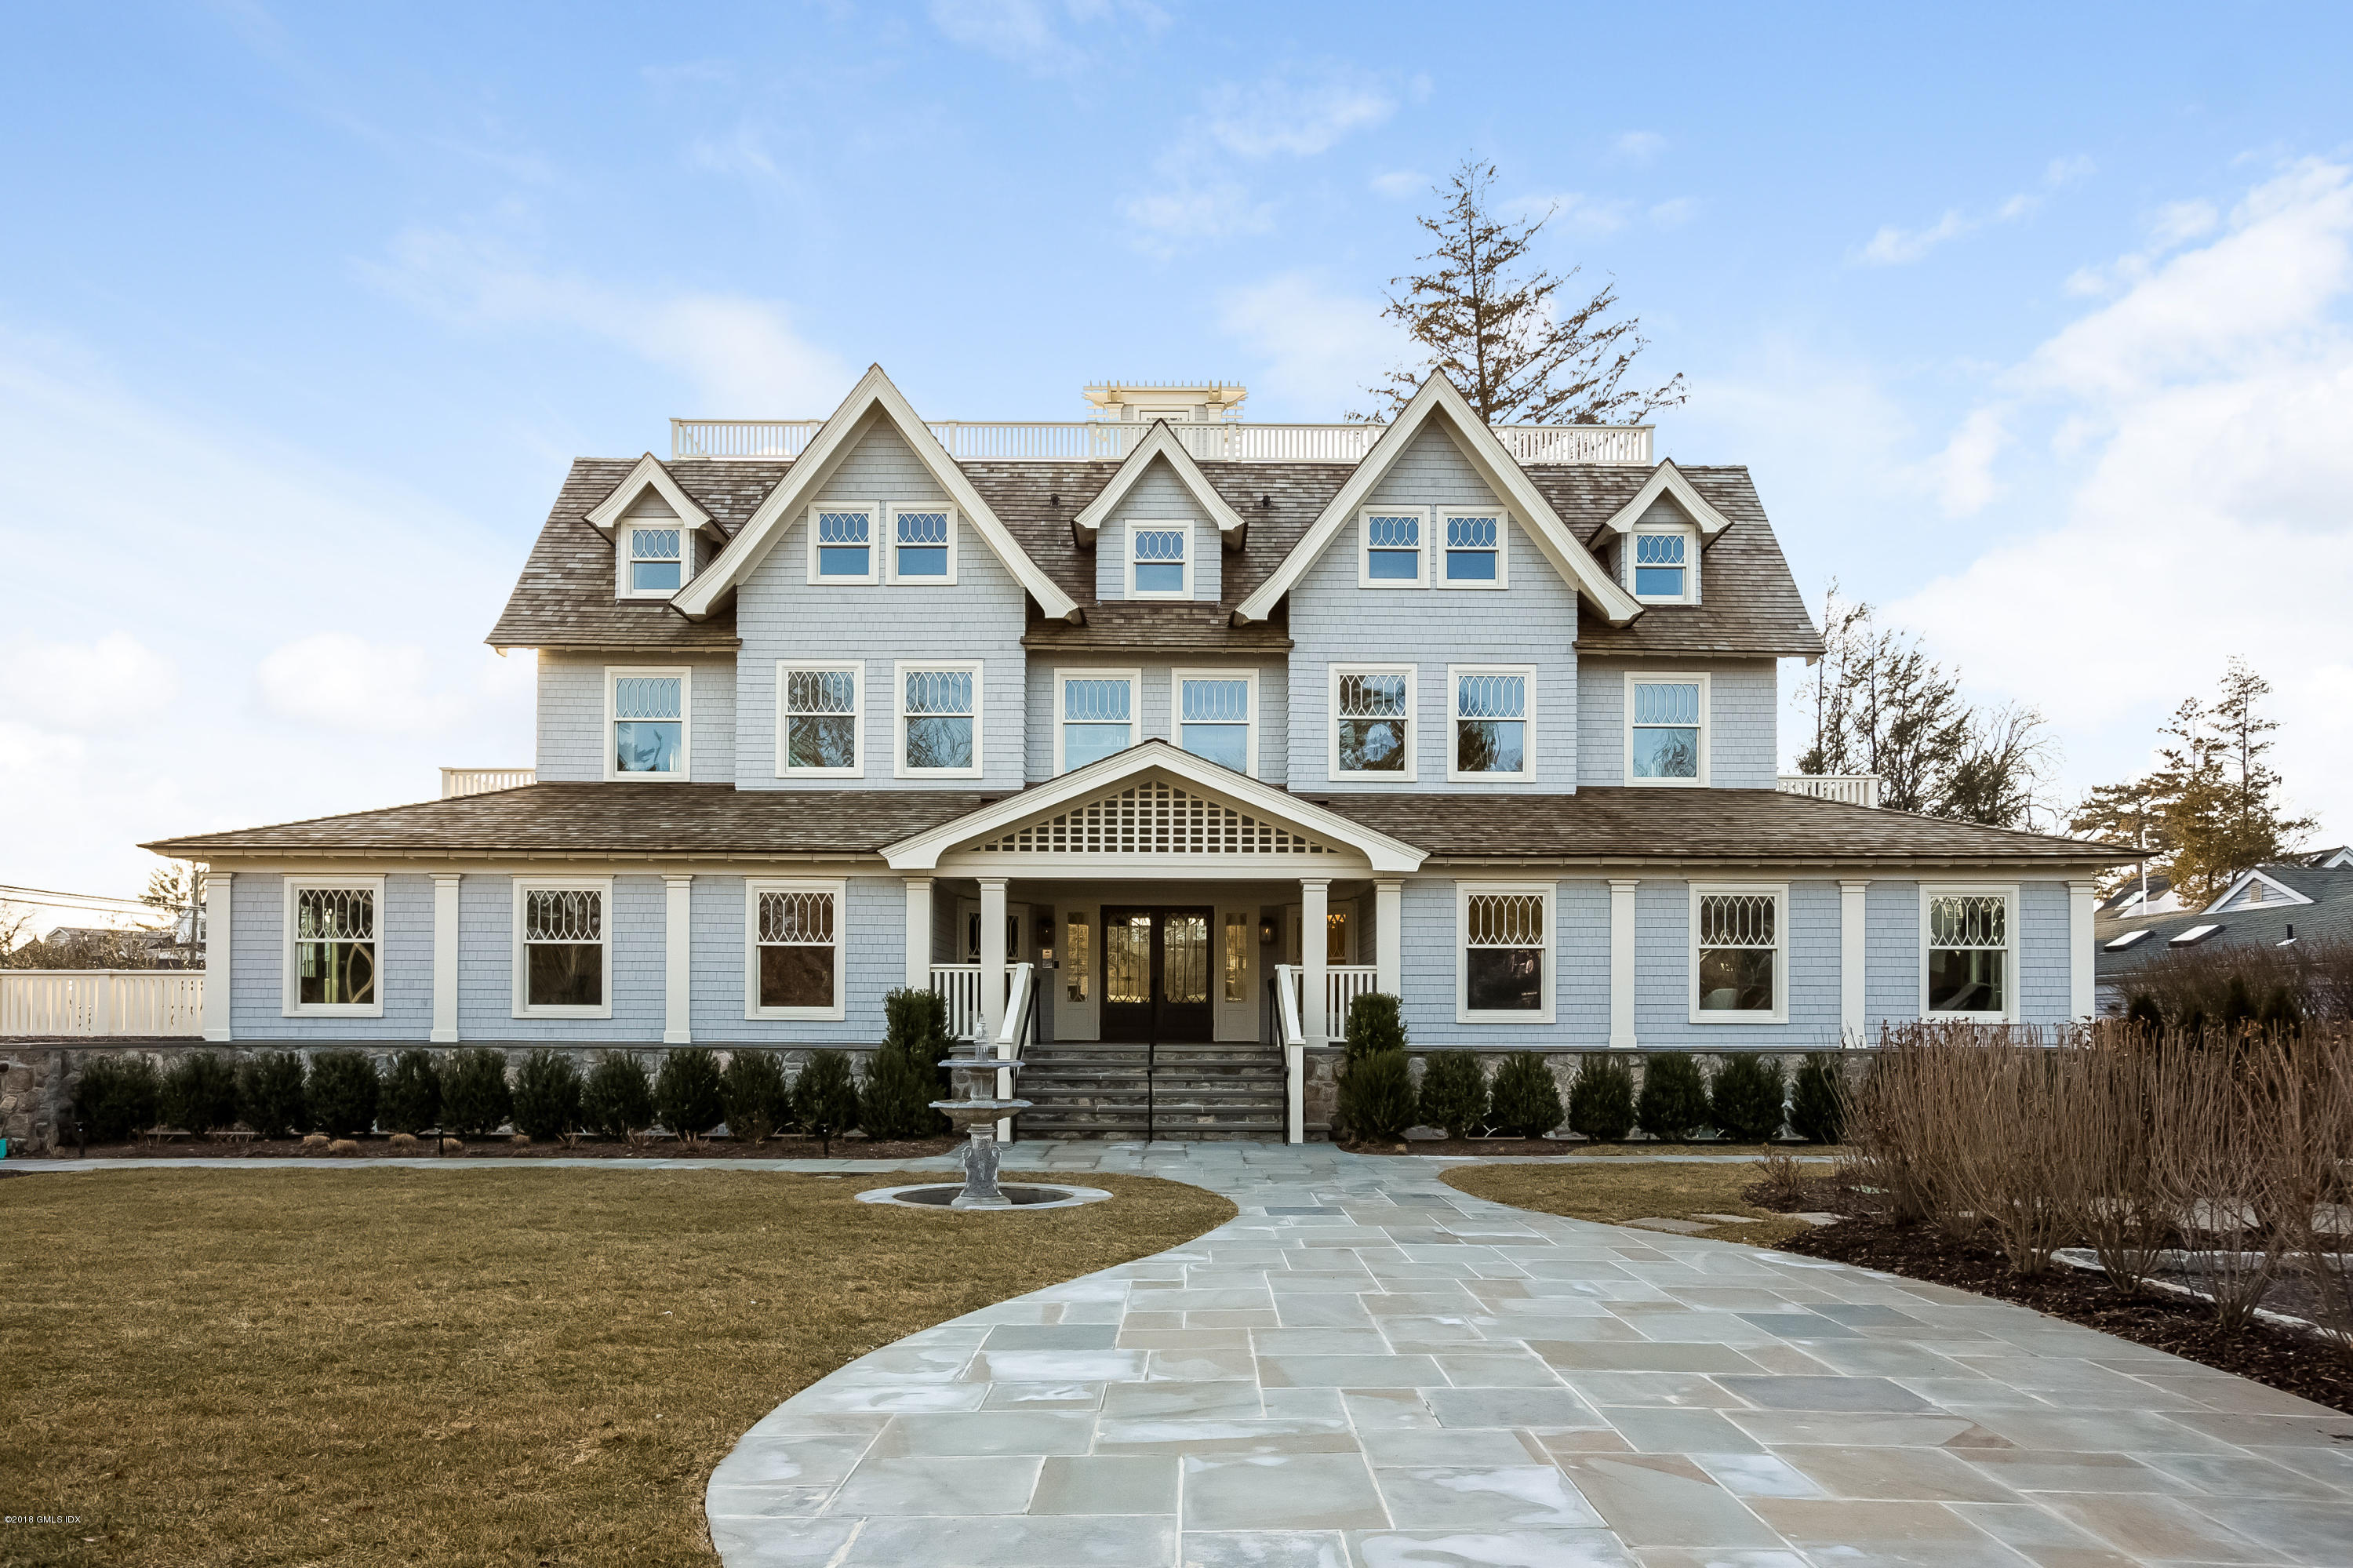 165 Shore Road,Old Greenwich,Connecticut 06870,3 Bedrooms Bedrooms,3 BathroomsBathrooms,Condominium,Shore,103177